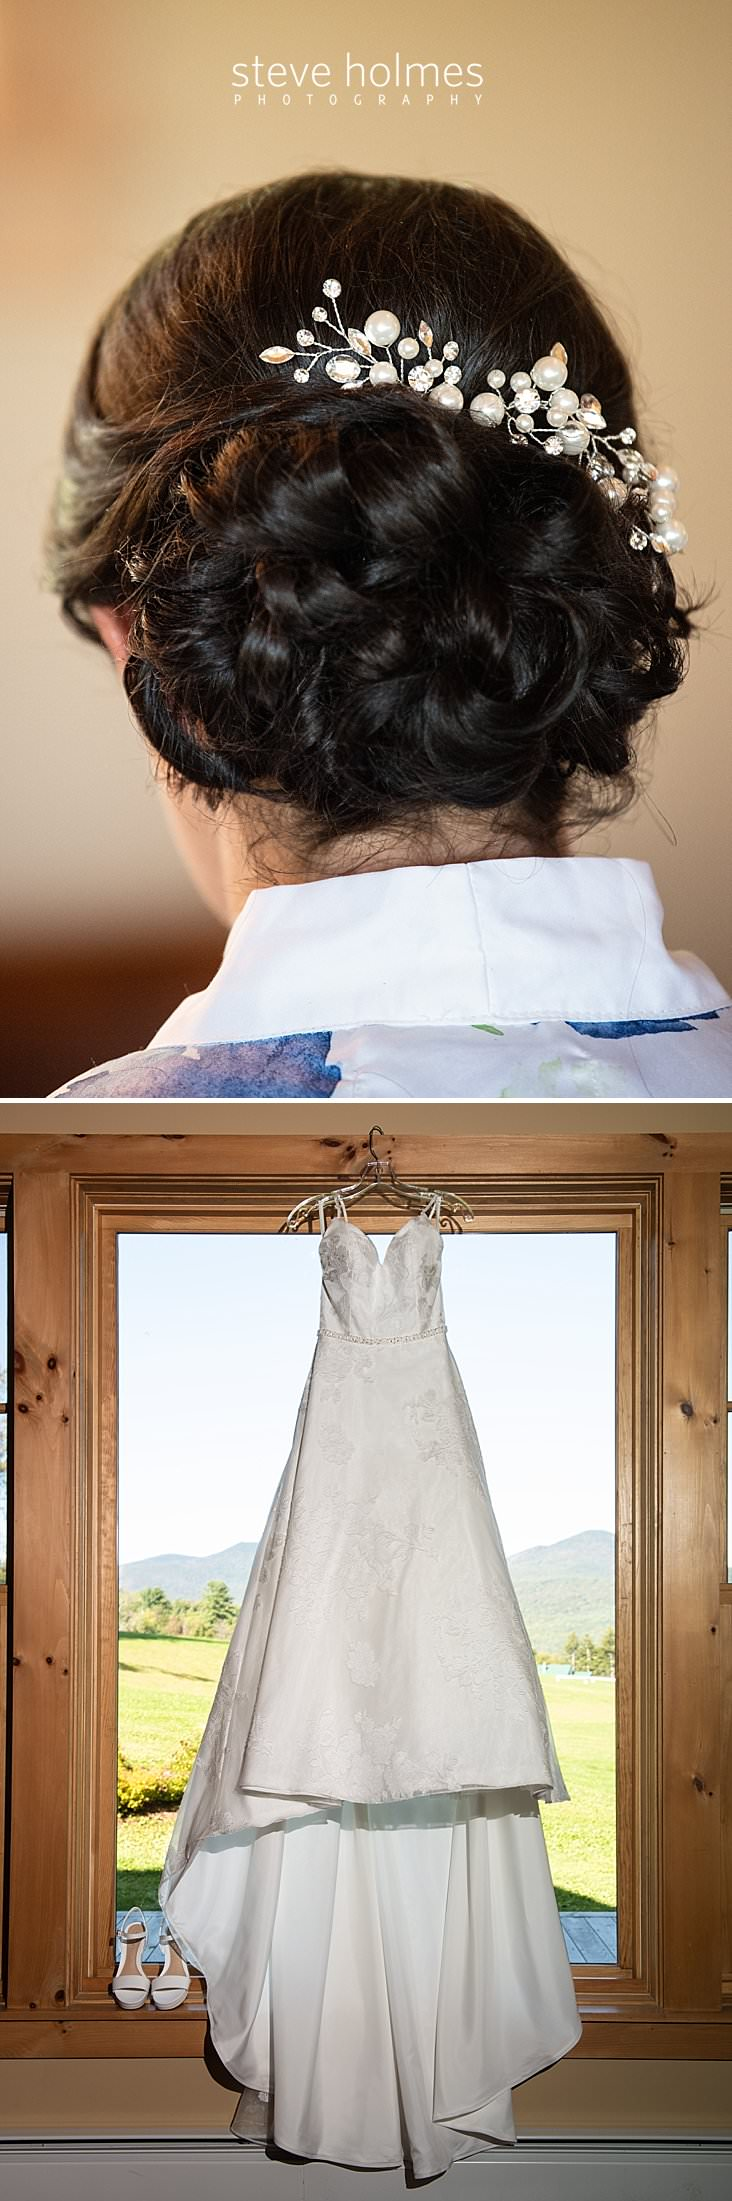 03_Bridal updo with pearl ivy hair piece.jpg